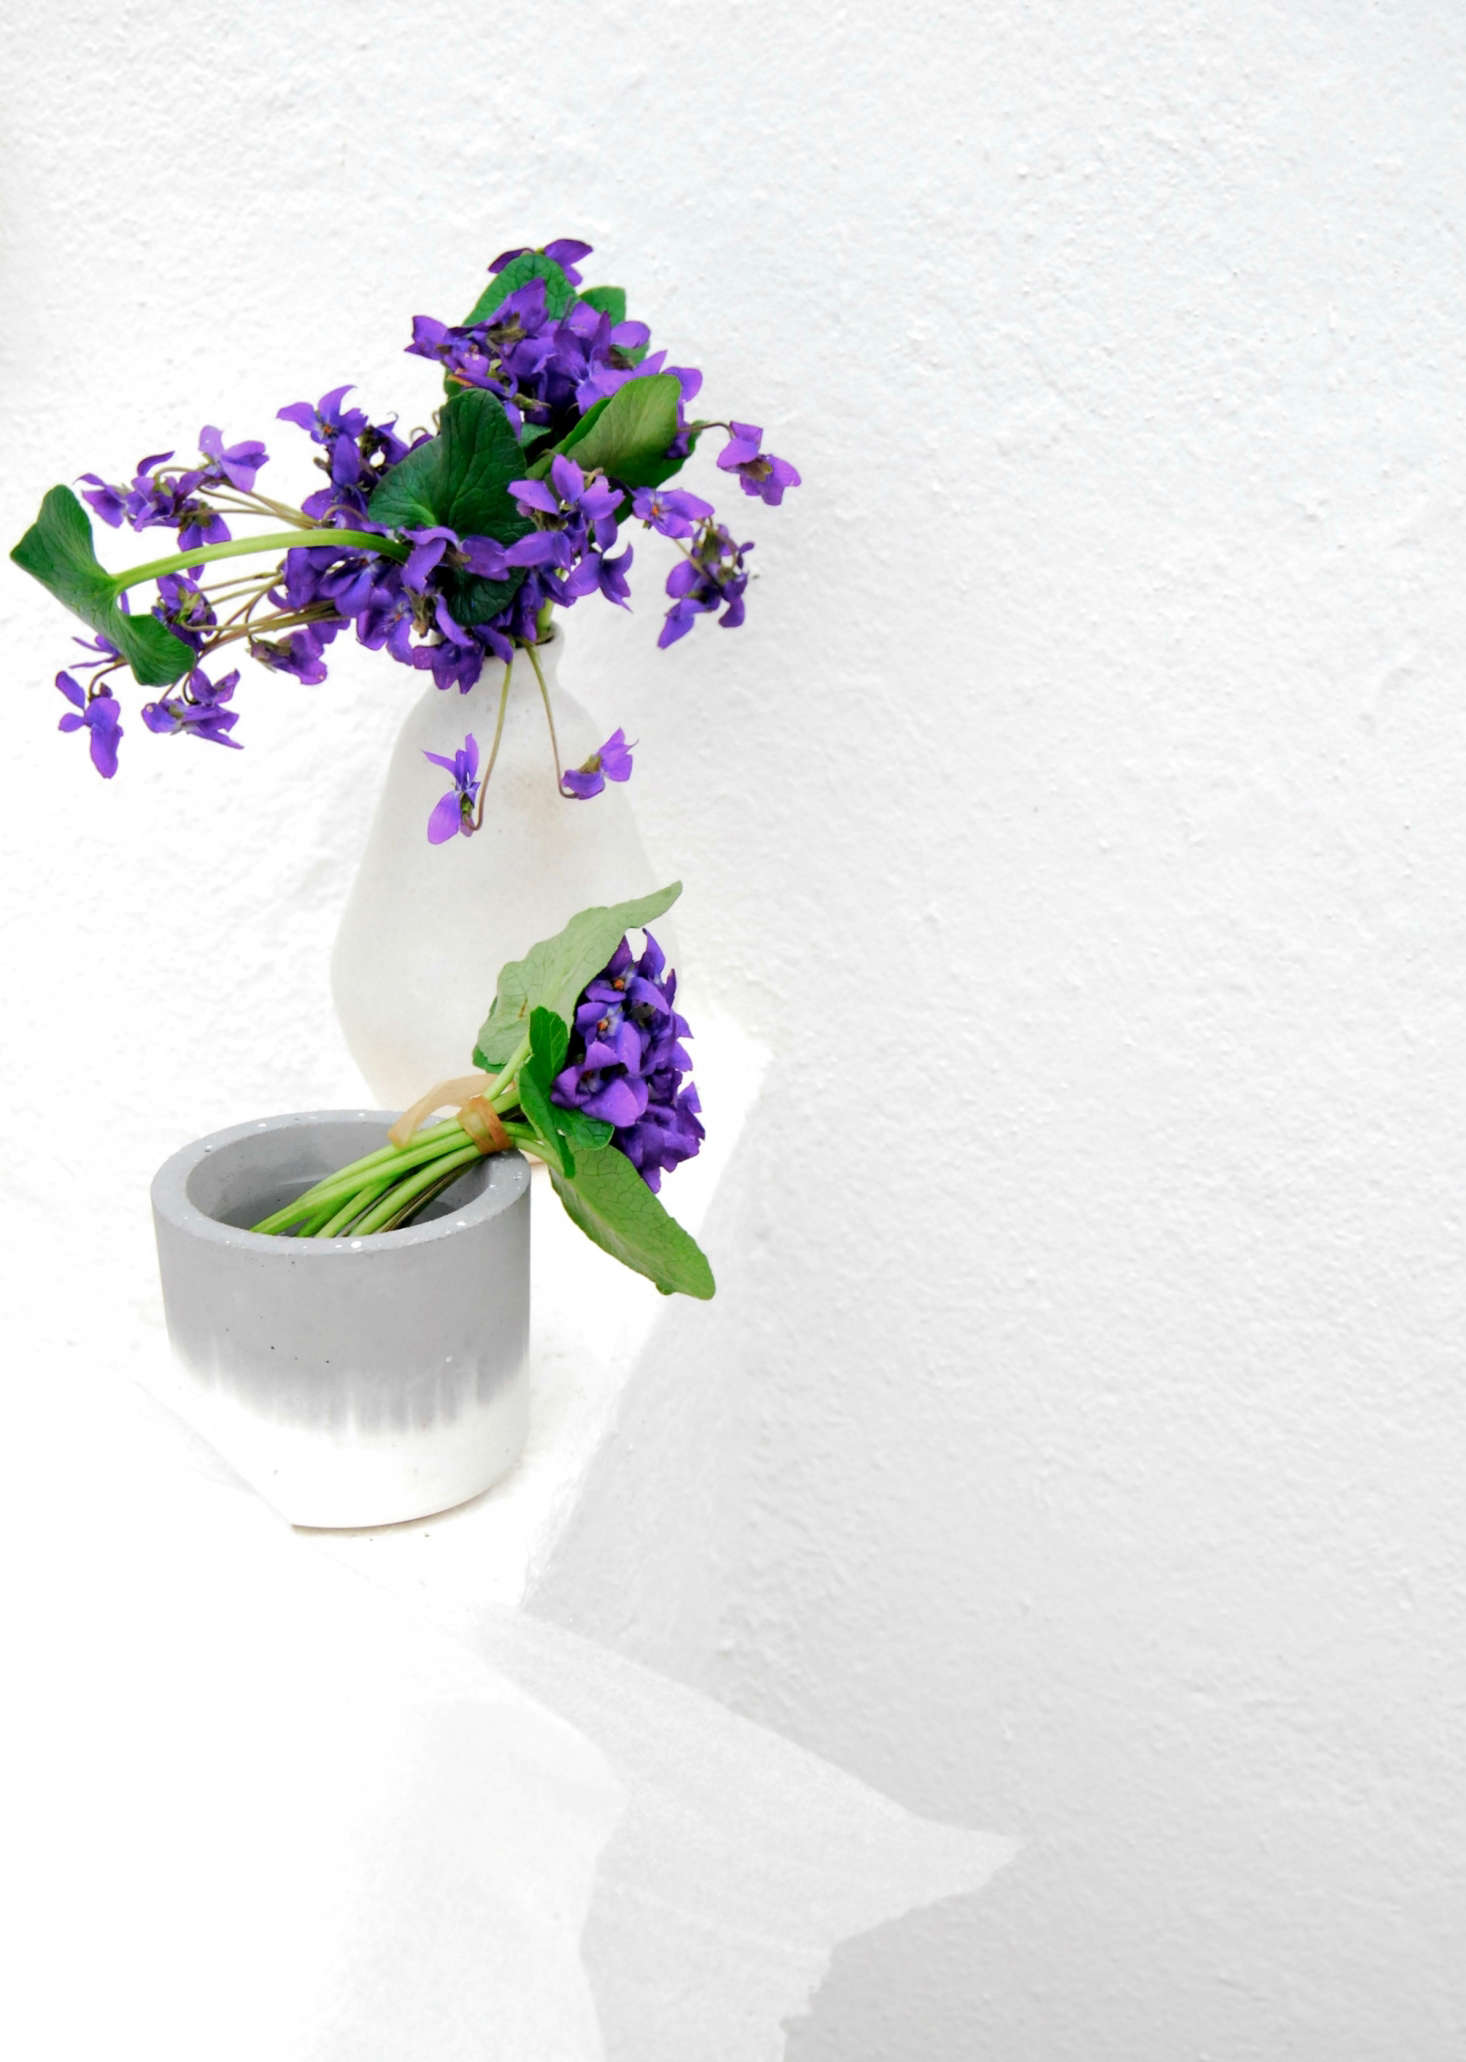 Additionally, I let another bouquet hang out in a modern cement vase, with a hint of gray.